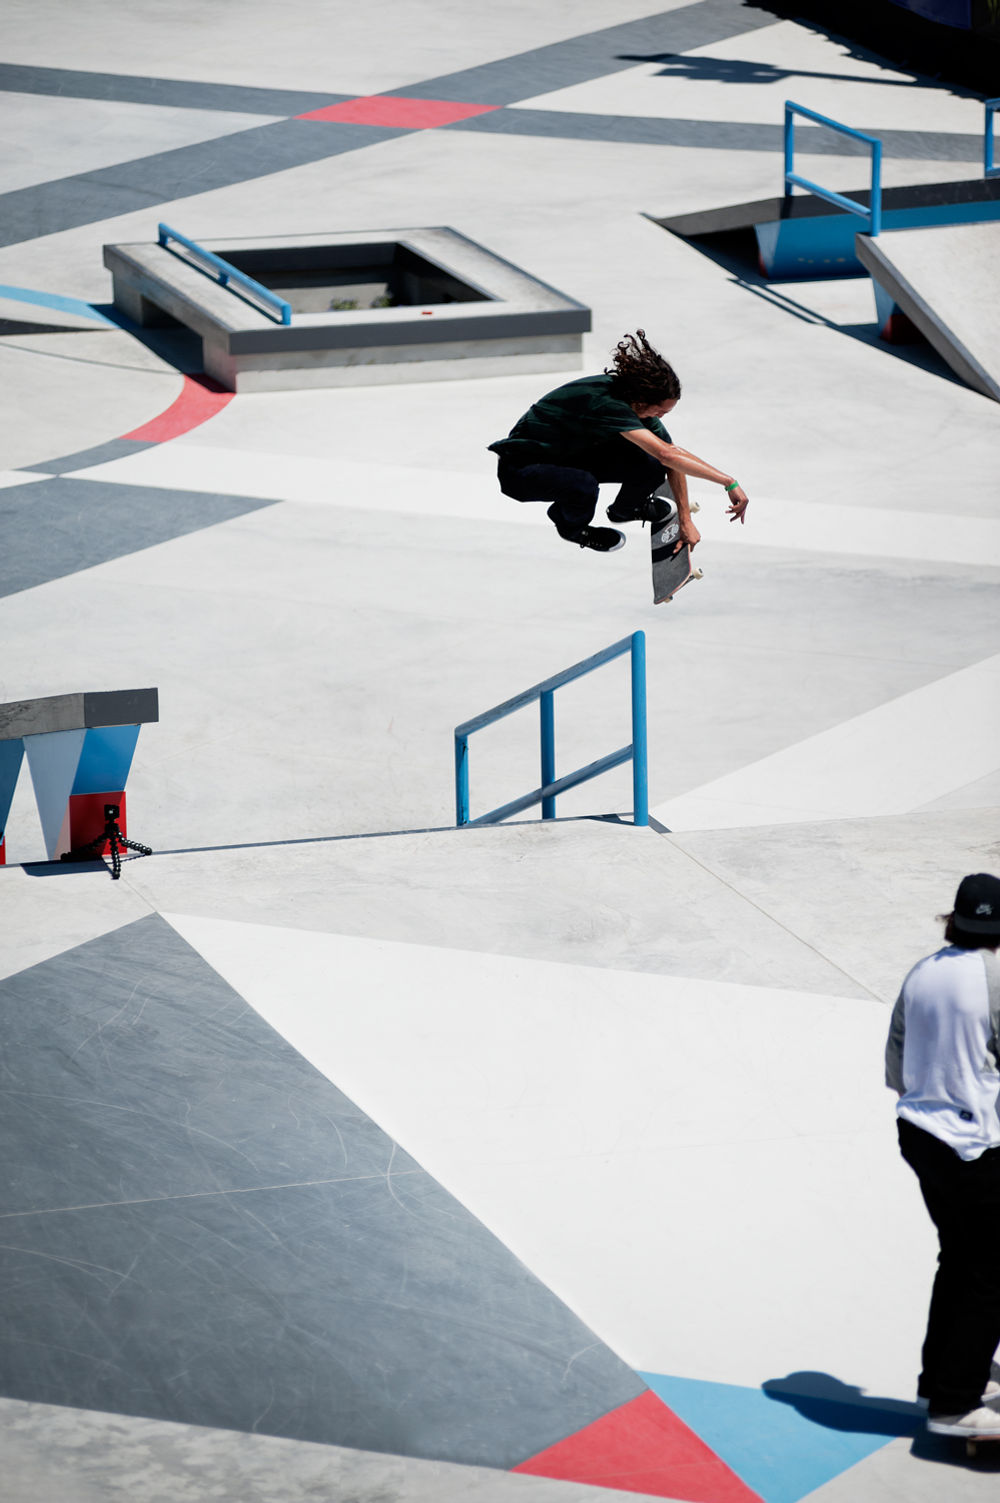 EVAN_SMITH_FRONTSIDE_360_BONELESS_GREY_HENRY_KINSGFORD